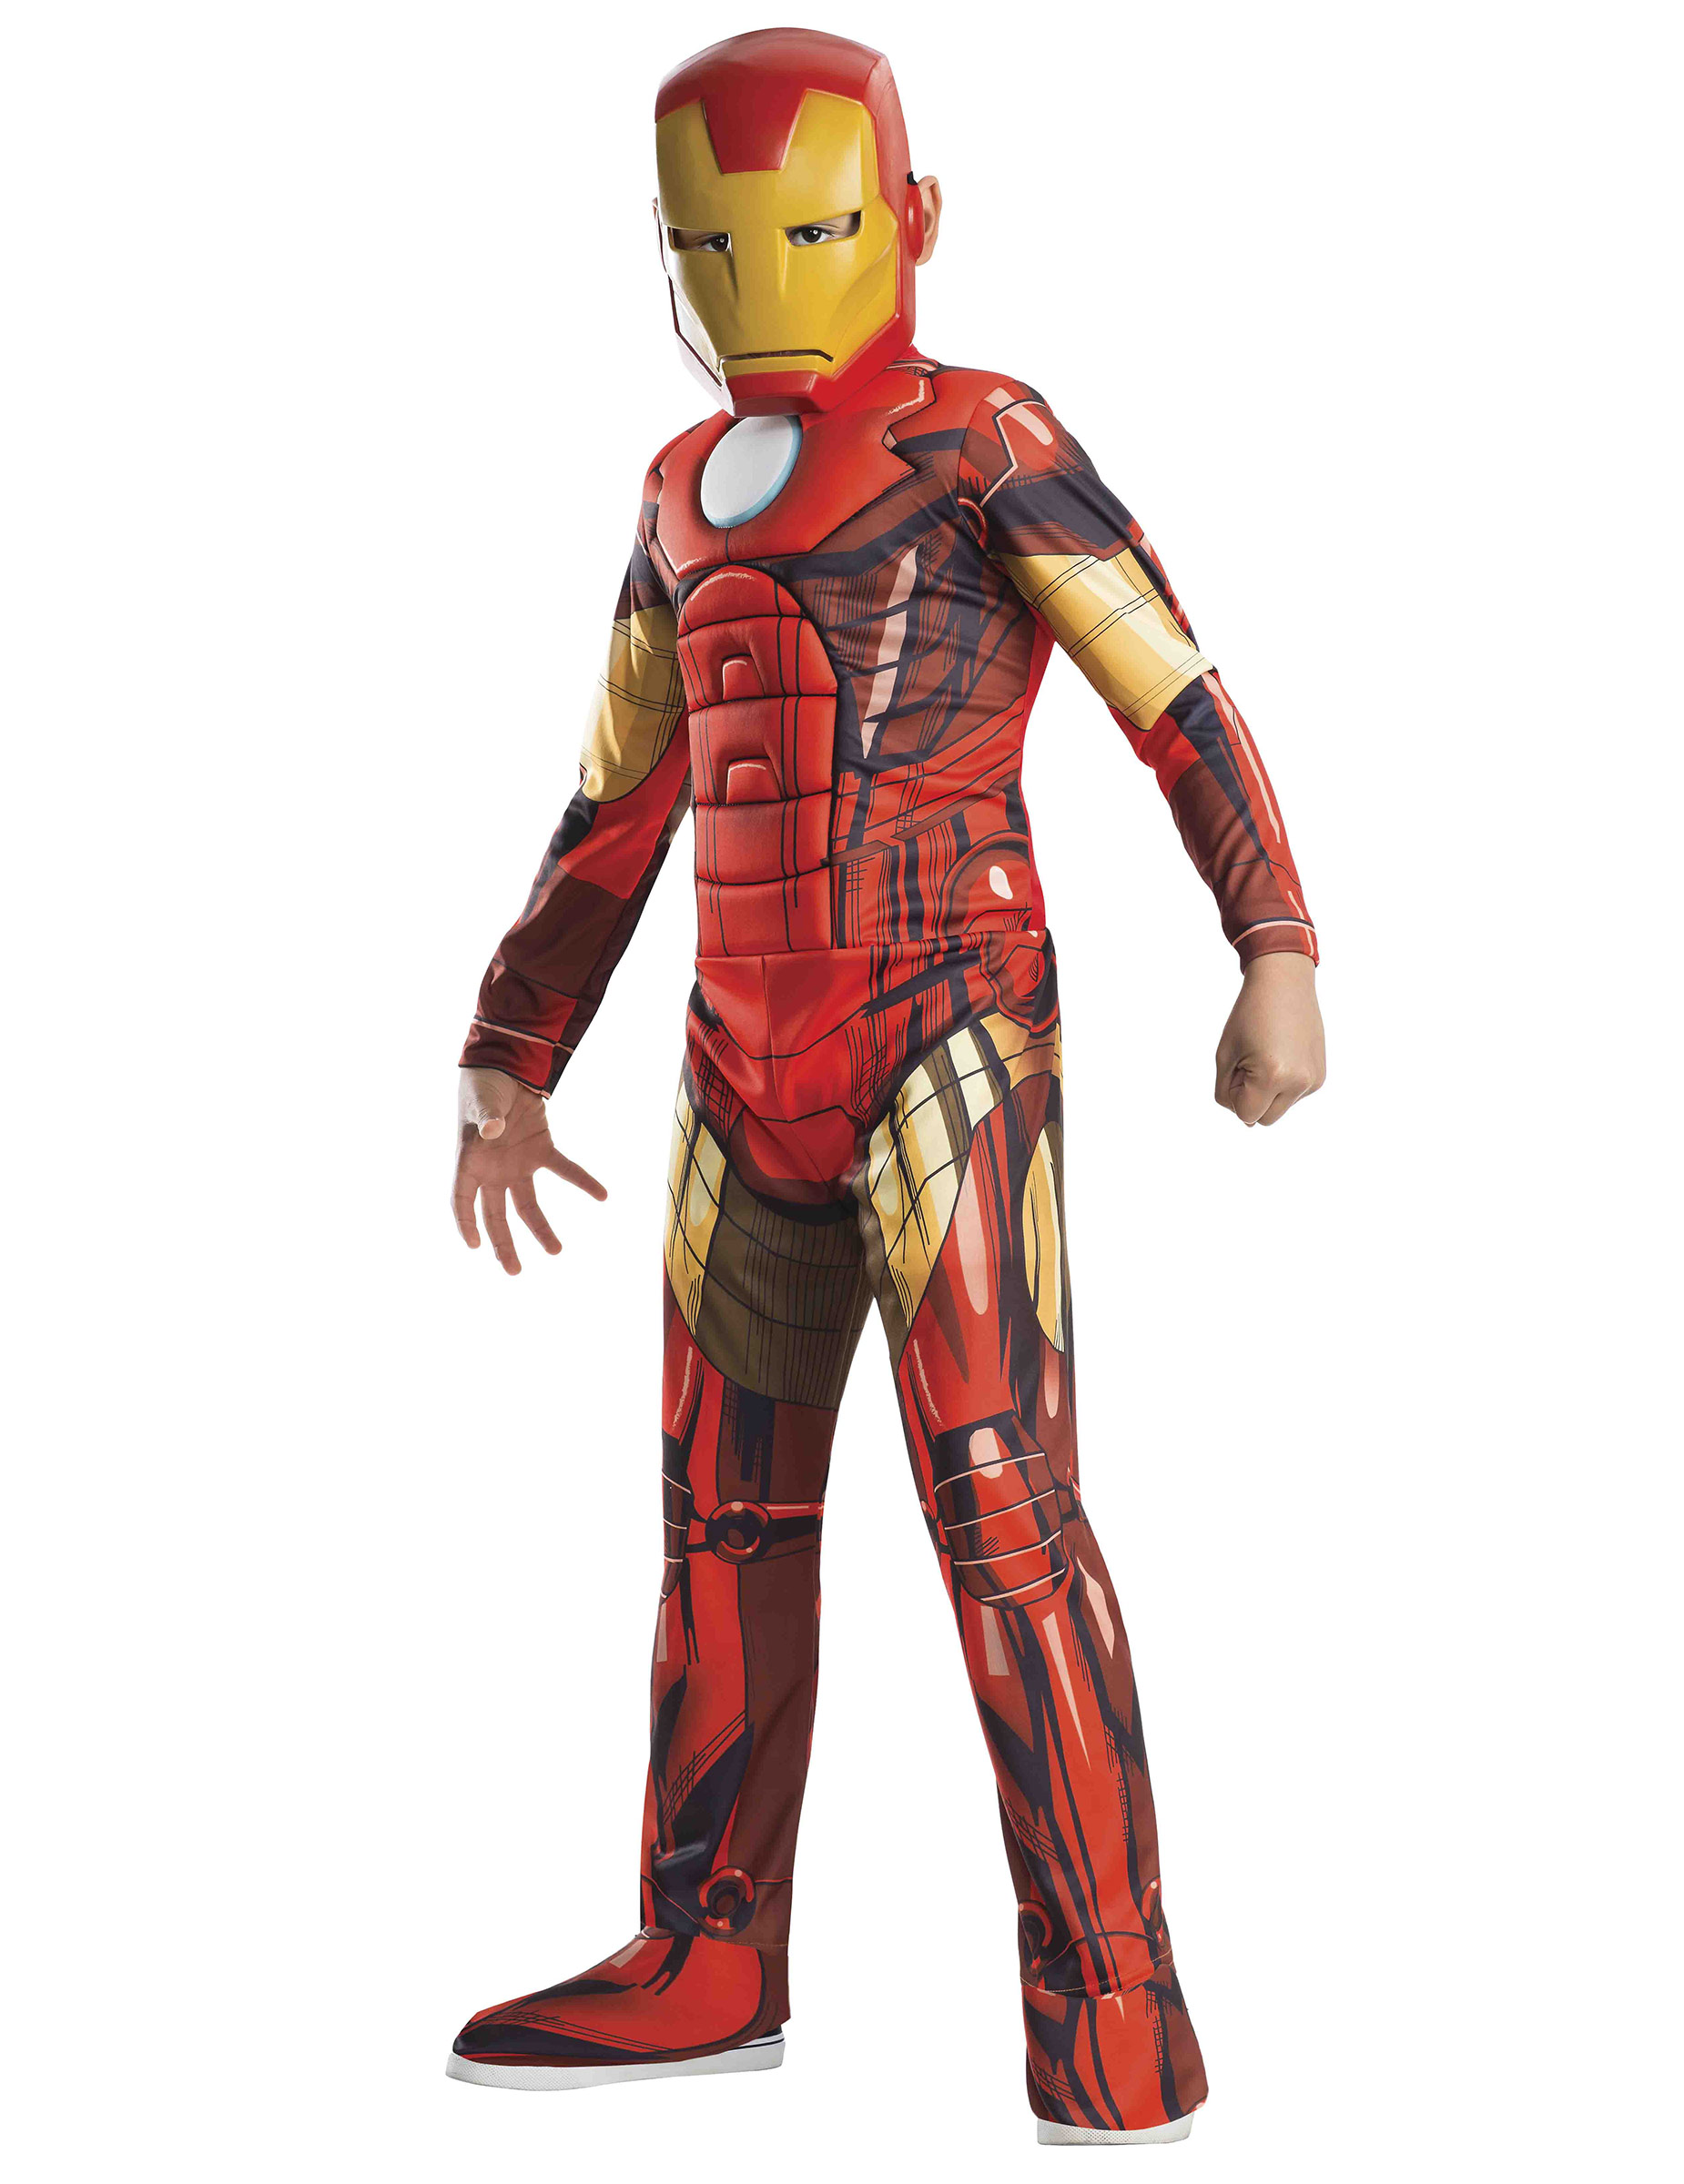 d guisement luxe iron man avengers gar on deguise toi achat de d guisements enfants. Black Bedroom Furniture Sets. Home Design Ideas